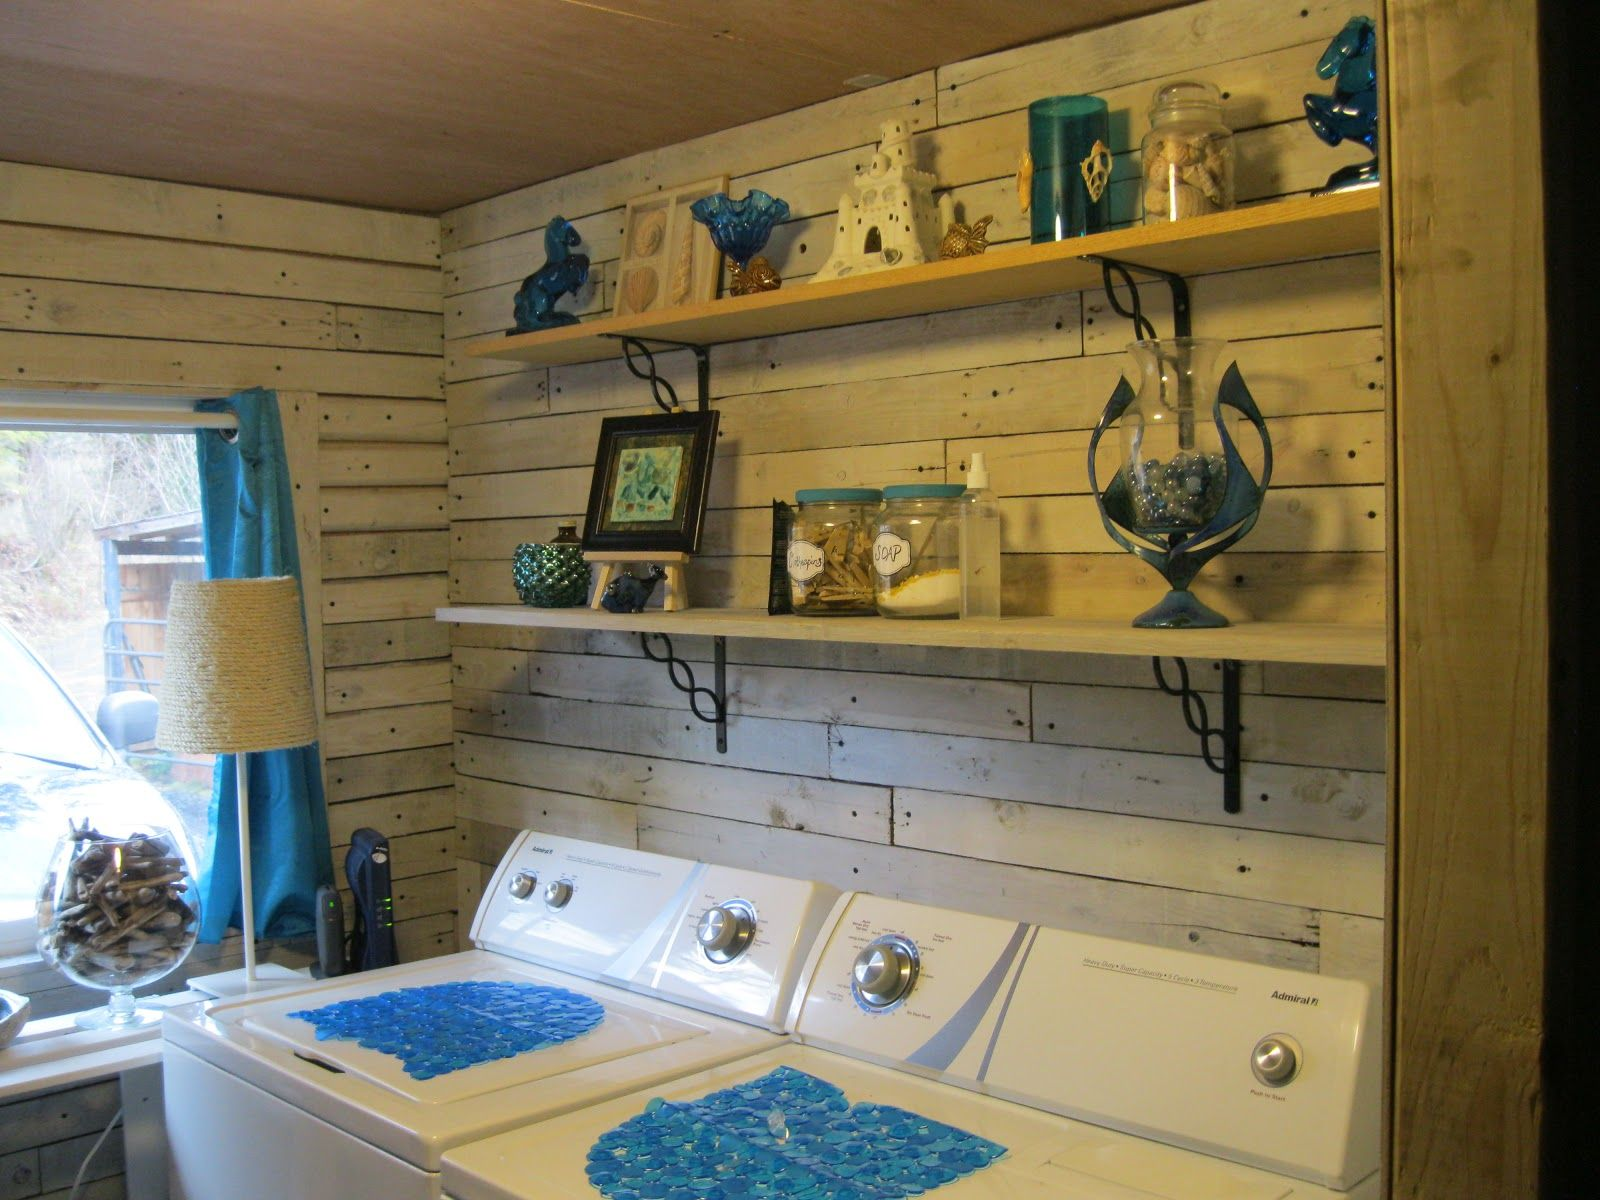 Laundry room makeover ideas for your mobile home laundry for Home remodeling ideas